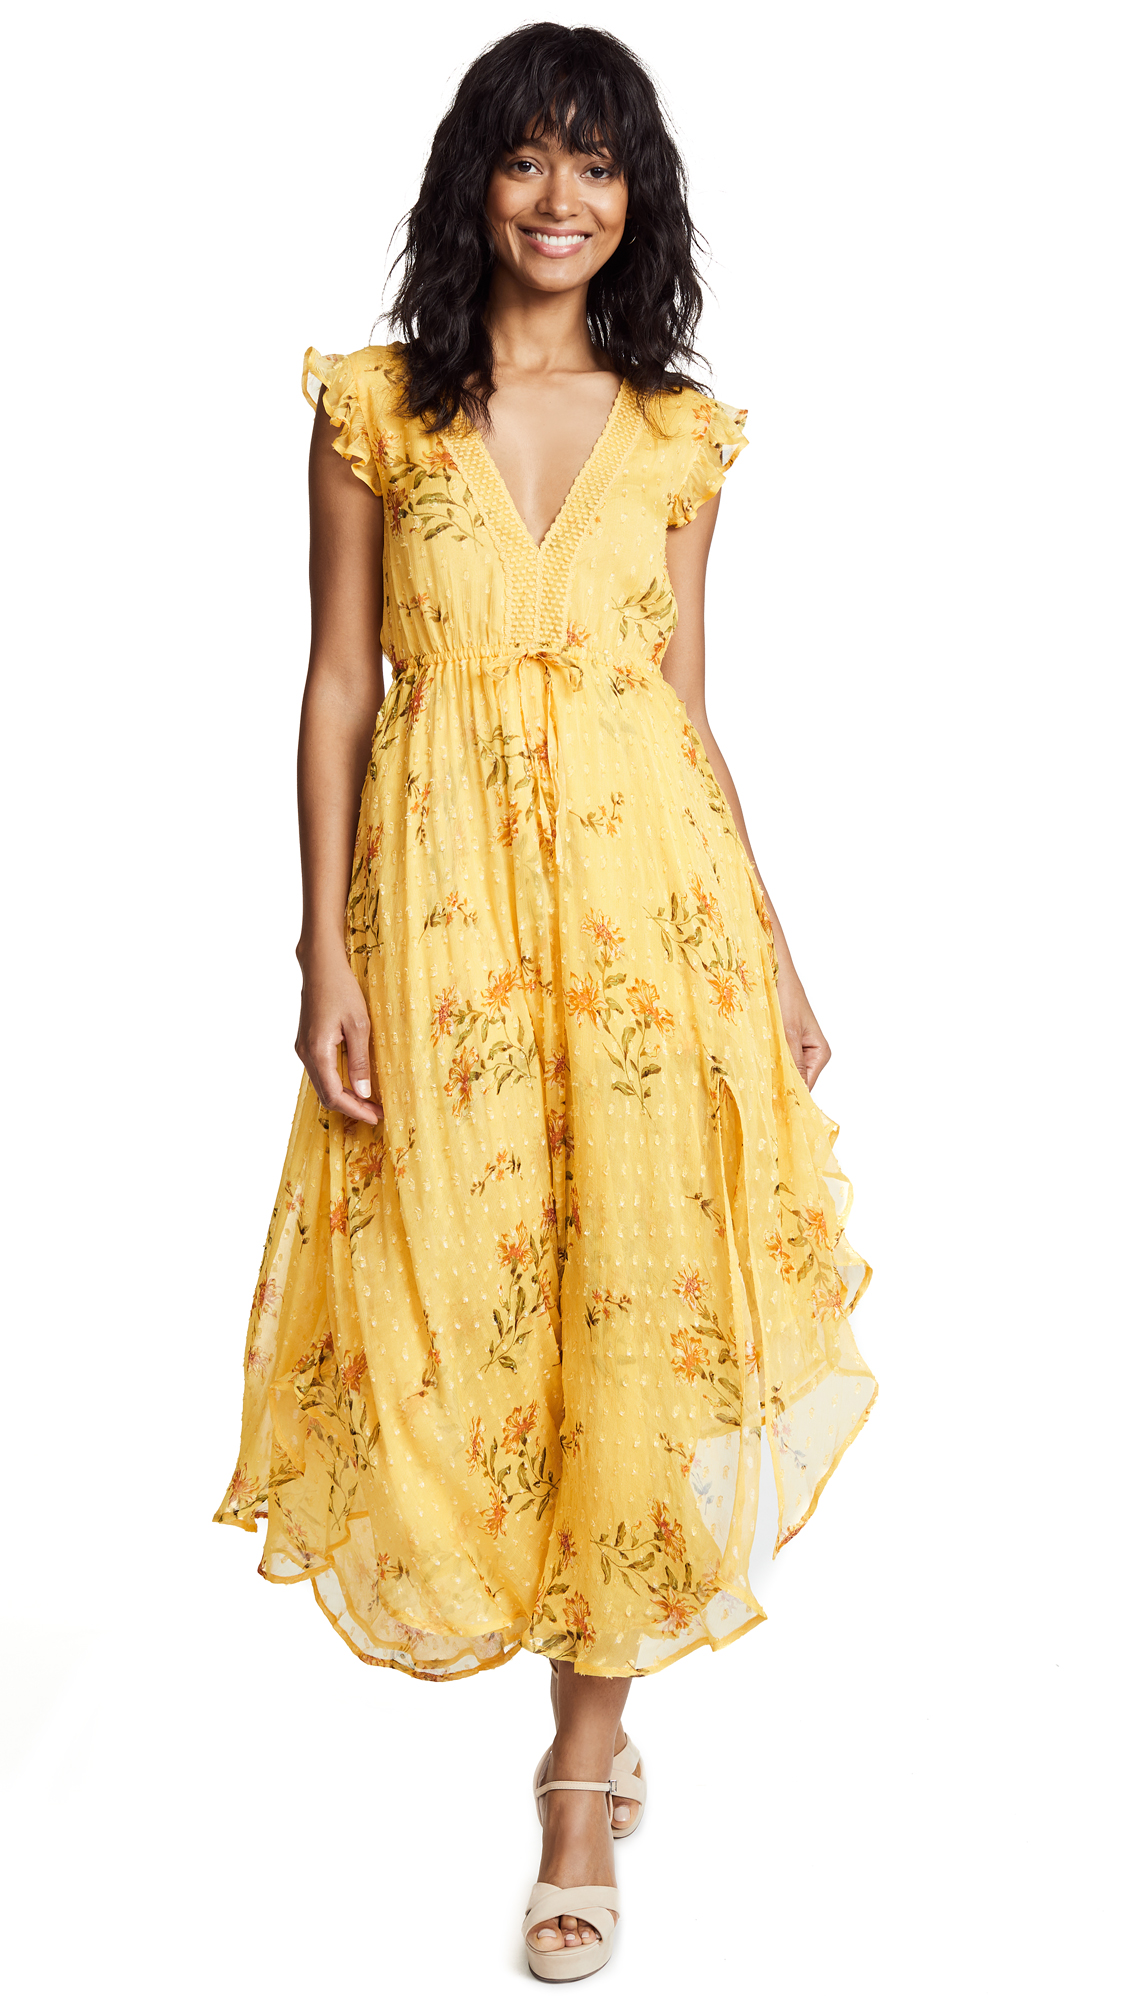 RAHICALI SUNKISSED BELLA DRESS